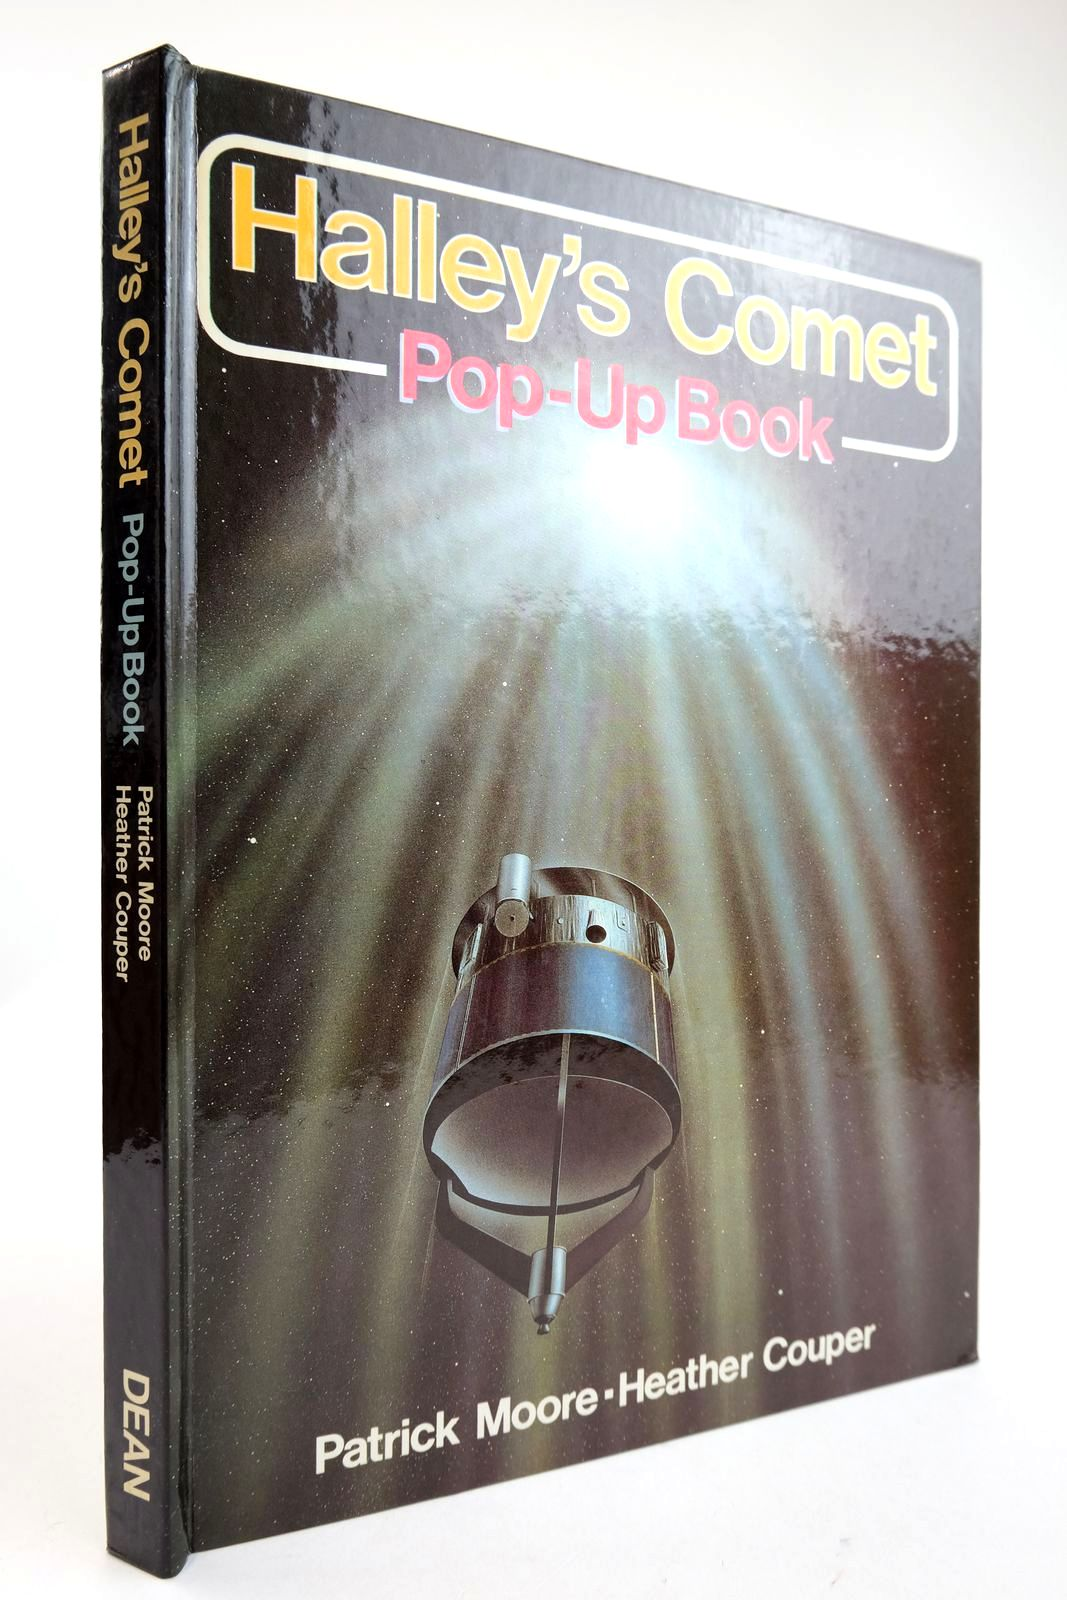 Photo of HALLEY'S COMET POP-UP BOOK written by Moore, Patrick Couper, Heather illustrated by Doherty, Paul published by Deans International Publishing (STOCK CODE: 2132952)  for sale by Stella & Rose's Books